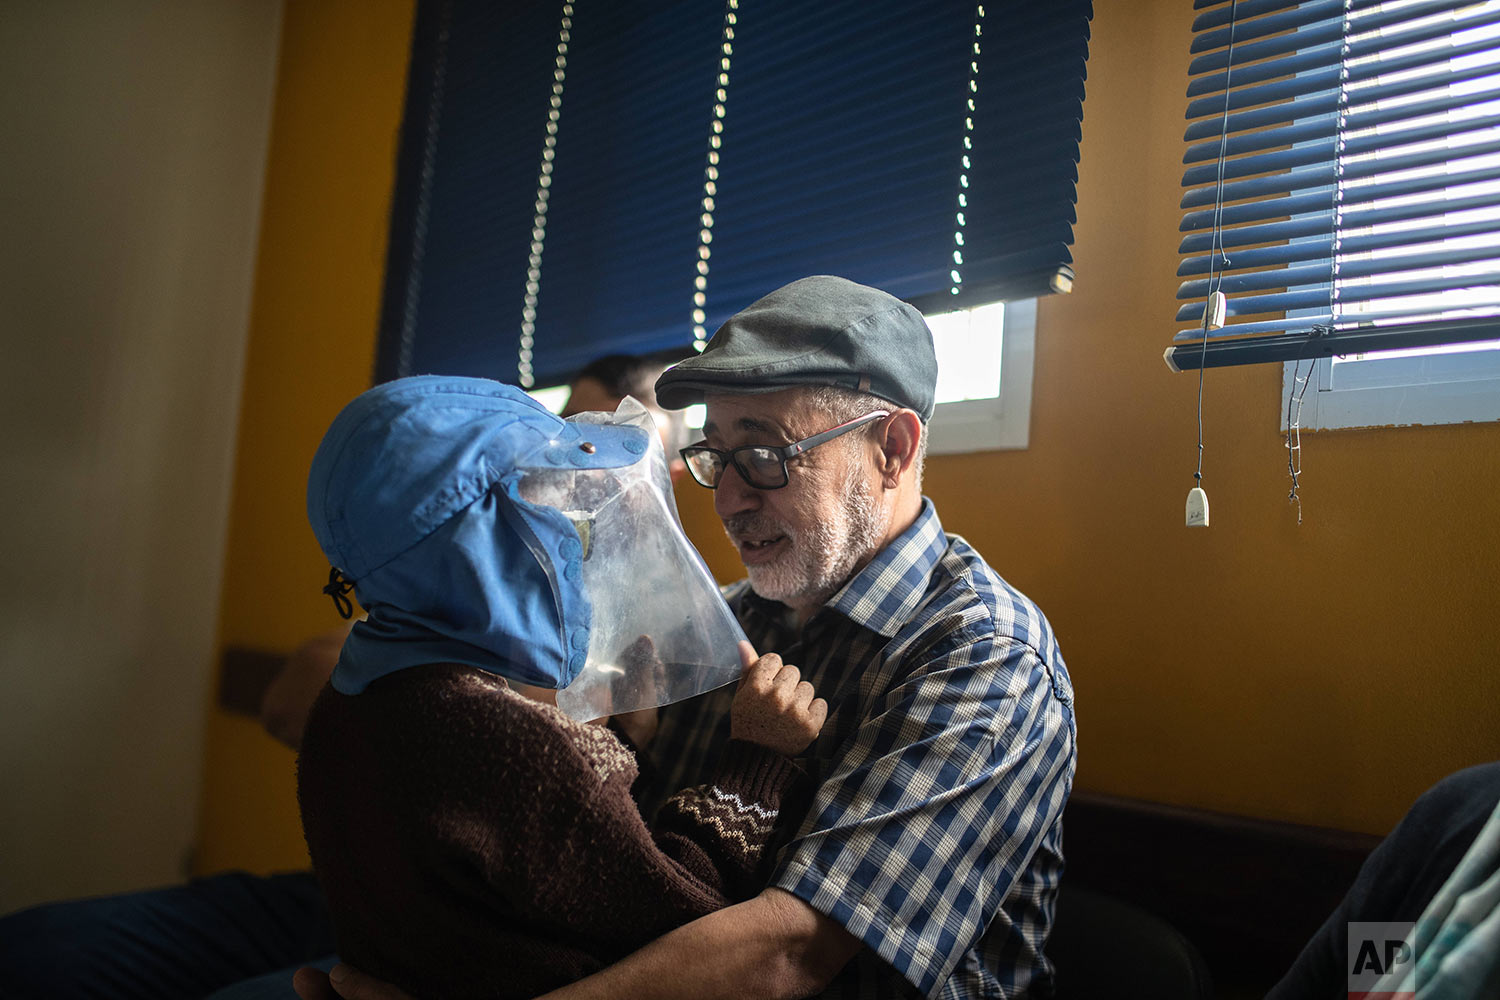 Habib El Ghazaoui, a father who runs the Association for Solidarity with Children of the Moon, plays with 8-year-old Mustapha who is affected by a rare genetic disorder called xeroderma pigmentosum, or XP, inside a hospital in Casablanca, Morocco, July 24, 2019. (AP Photo/Mosa'ab Elshamy)